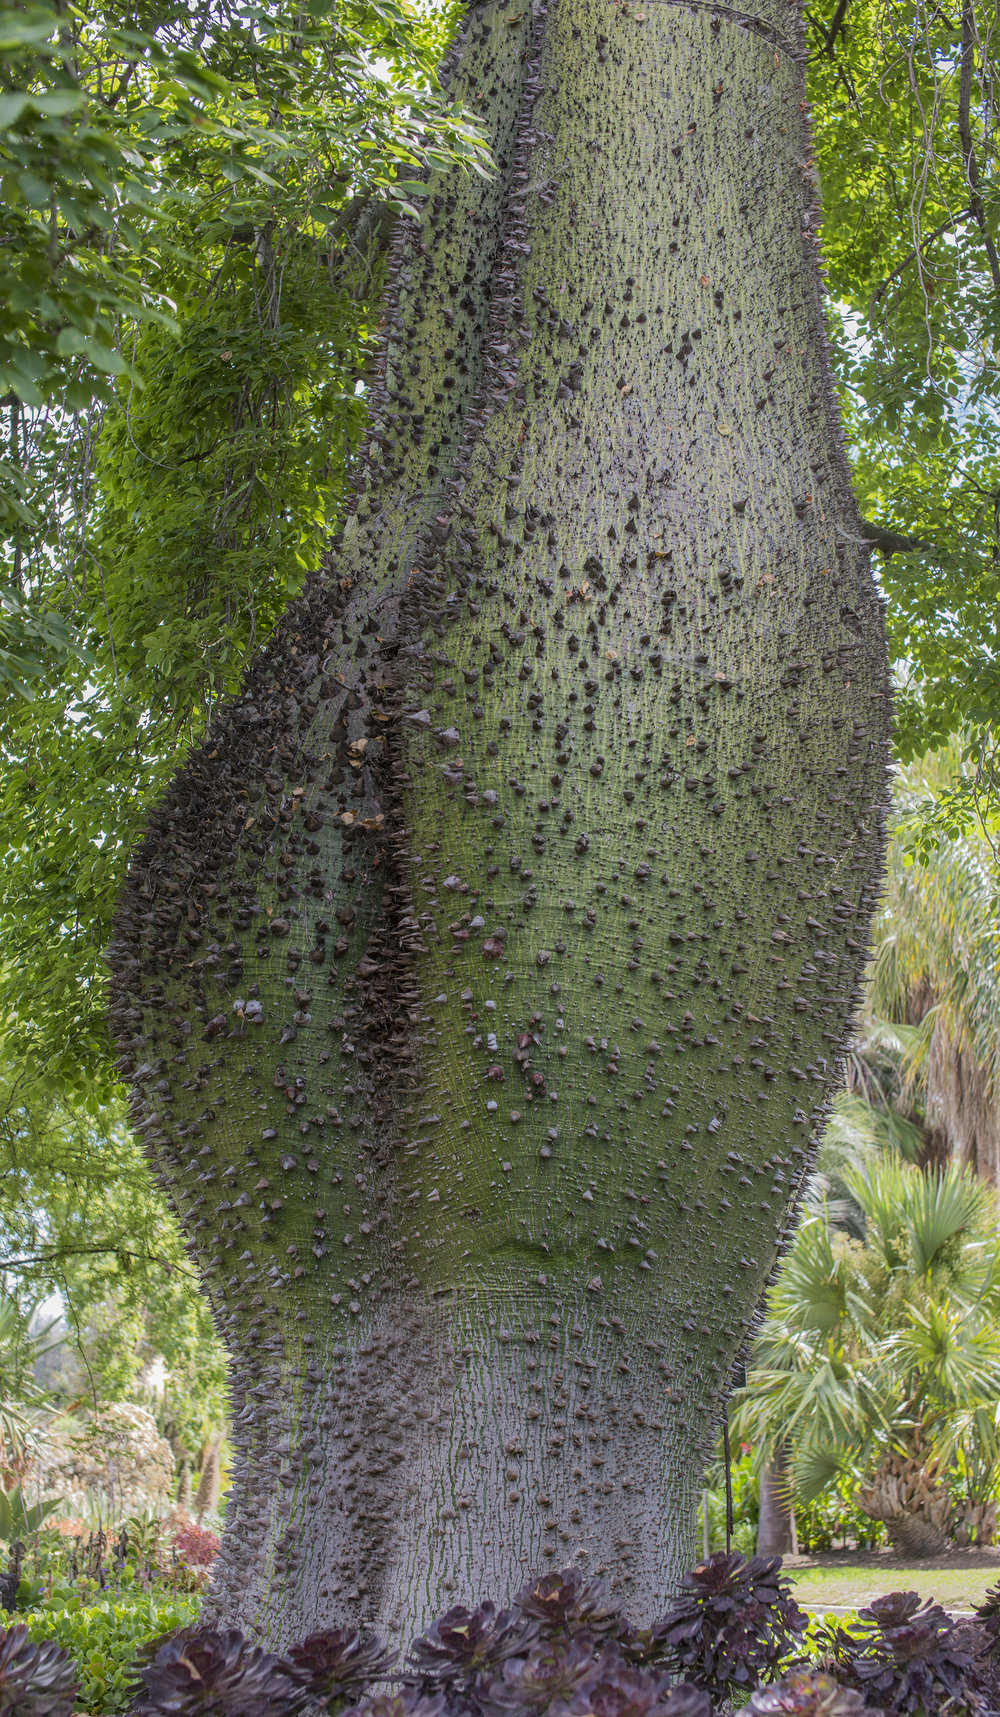 Chorisia Insignis at Huntington Botanical Gardens, San Marino, California